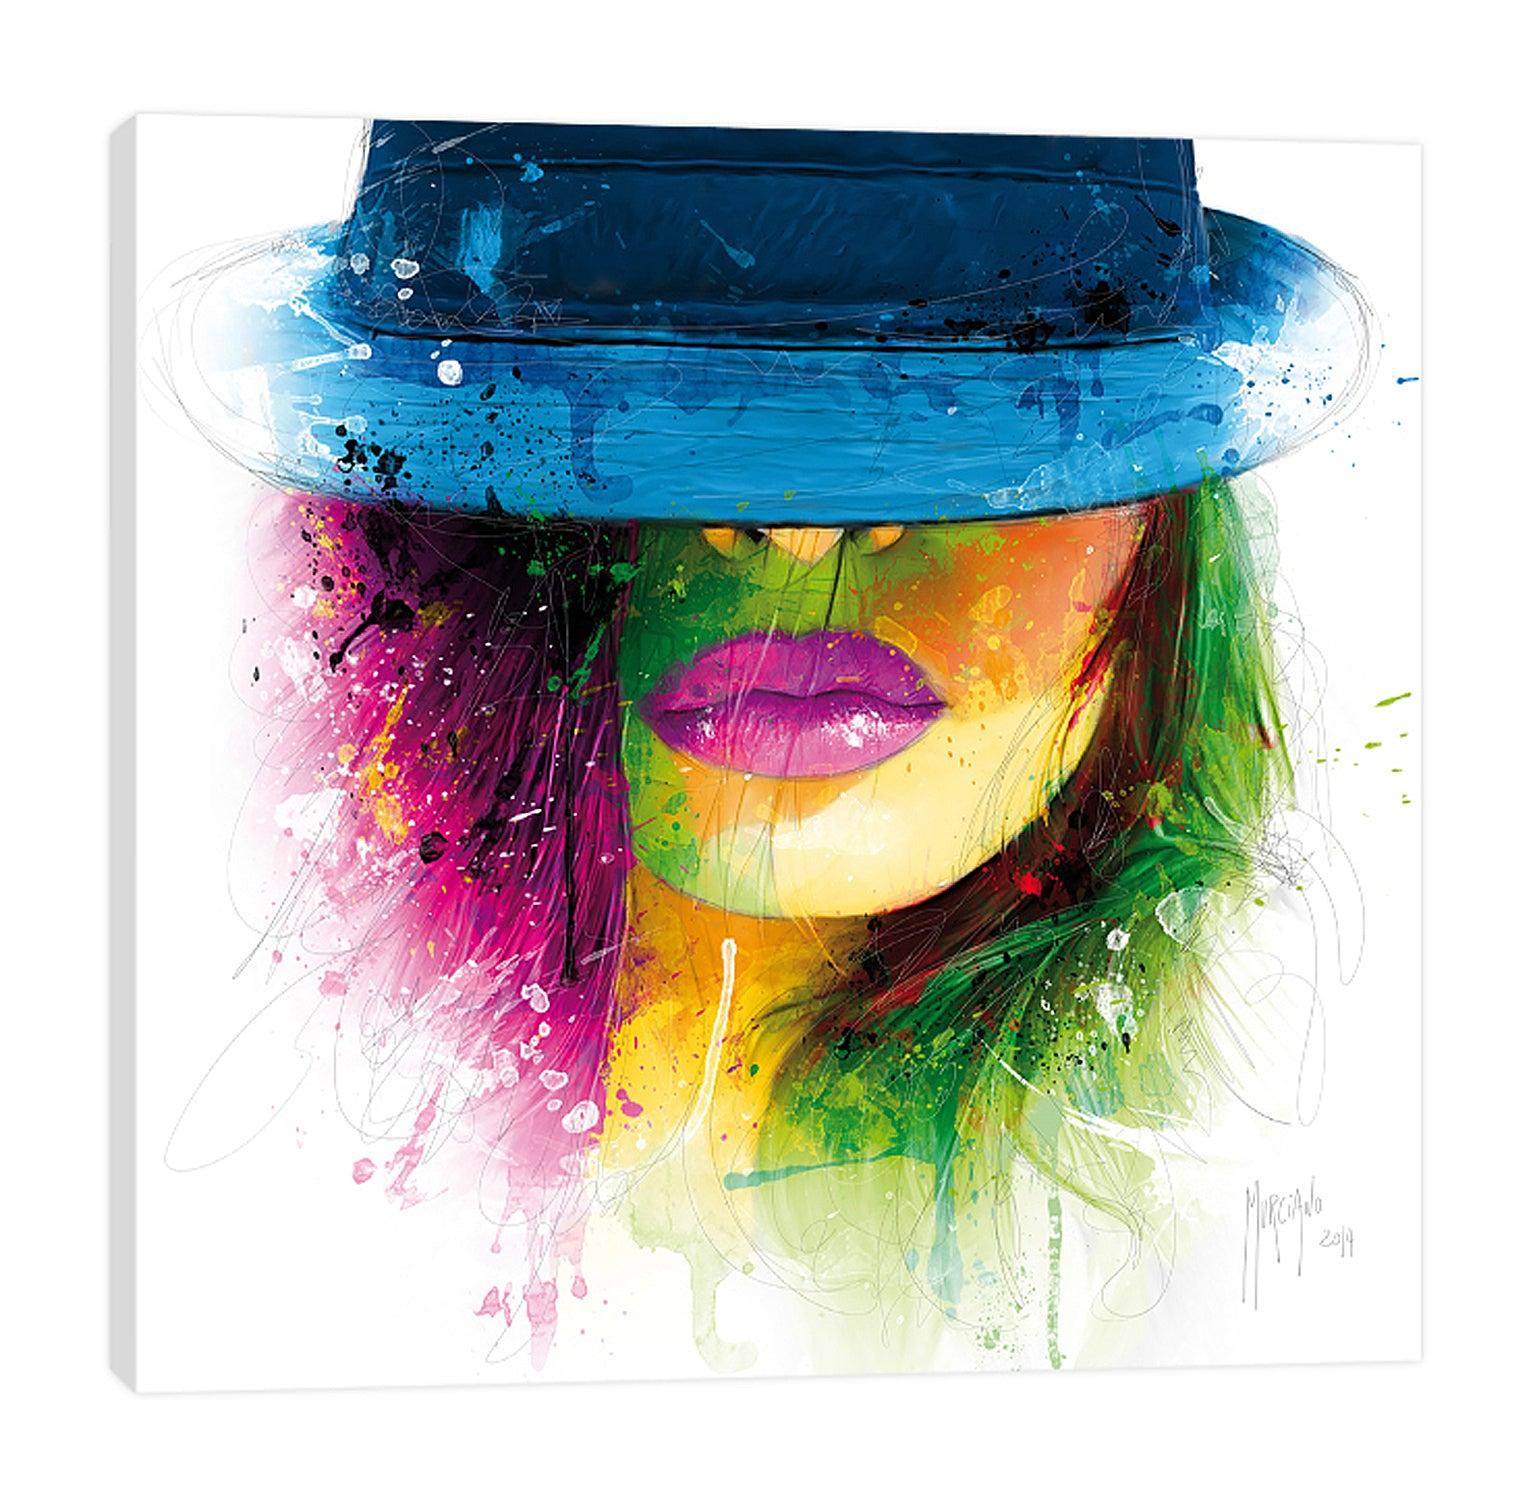 Patrice-Murciano,Modern & Contemporary,People,Fashion,woman,lady,lines,ombre,splatters,eyes,eyeshadow,fashion,hat,Navy Blue,Pale Green,Green,Mist Gray,White,Black,Gray